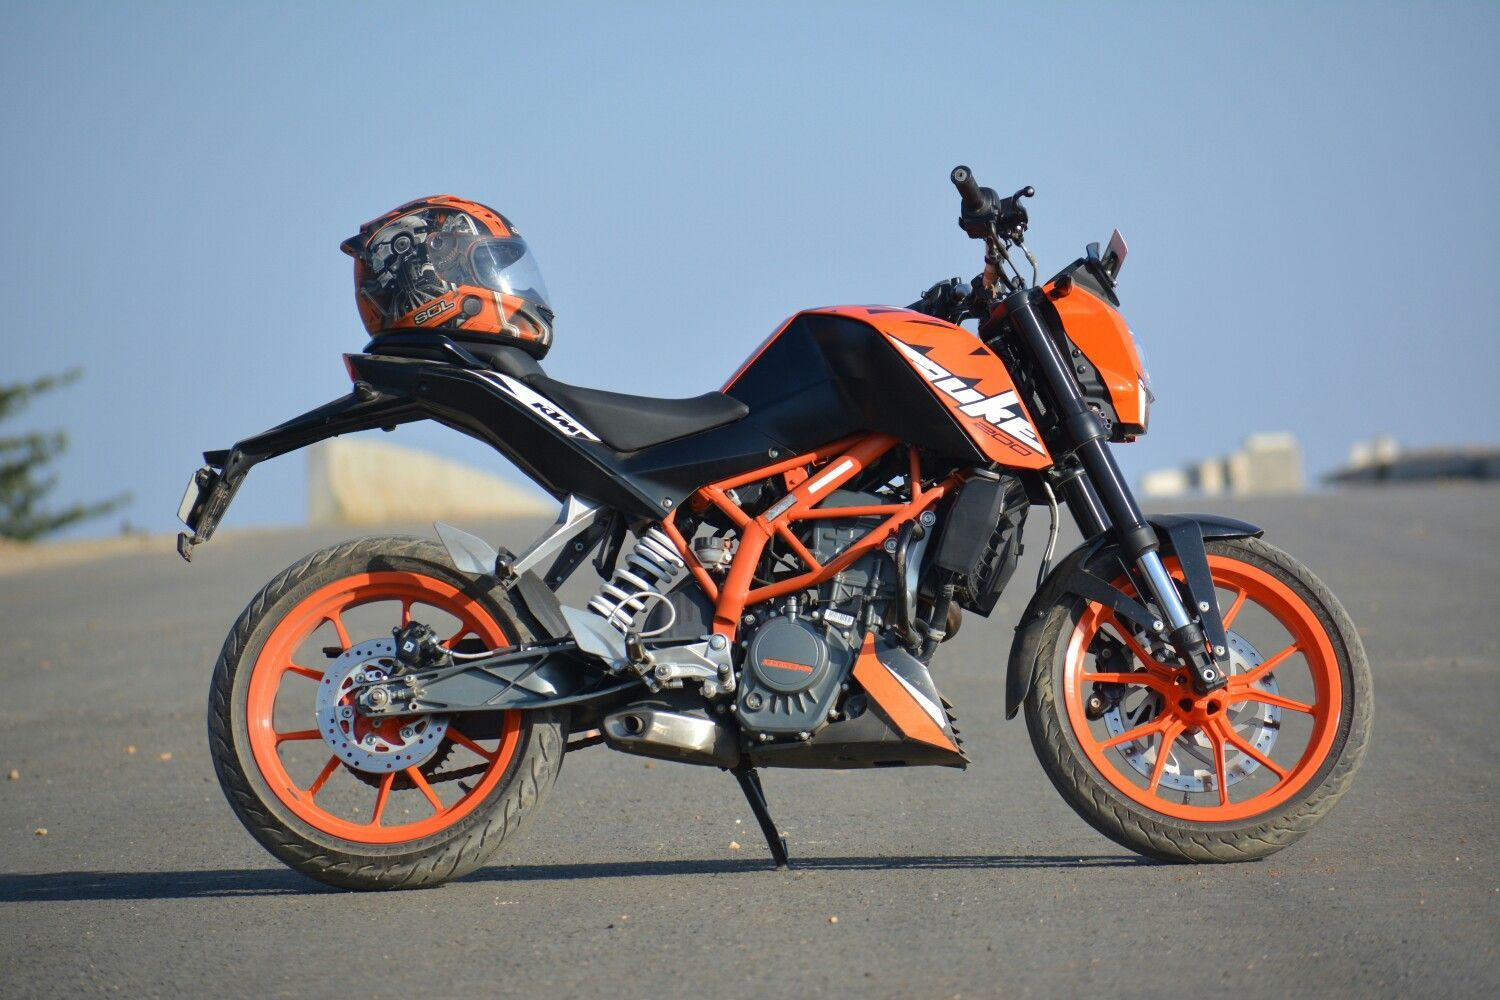 Ktm Duke 200 Modified Ktm Duke Ktm Duke Ktm Duke 390 Ktm